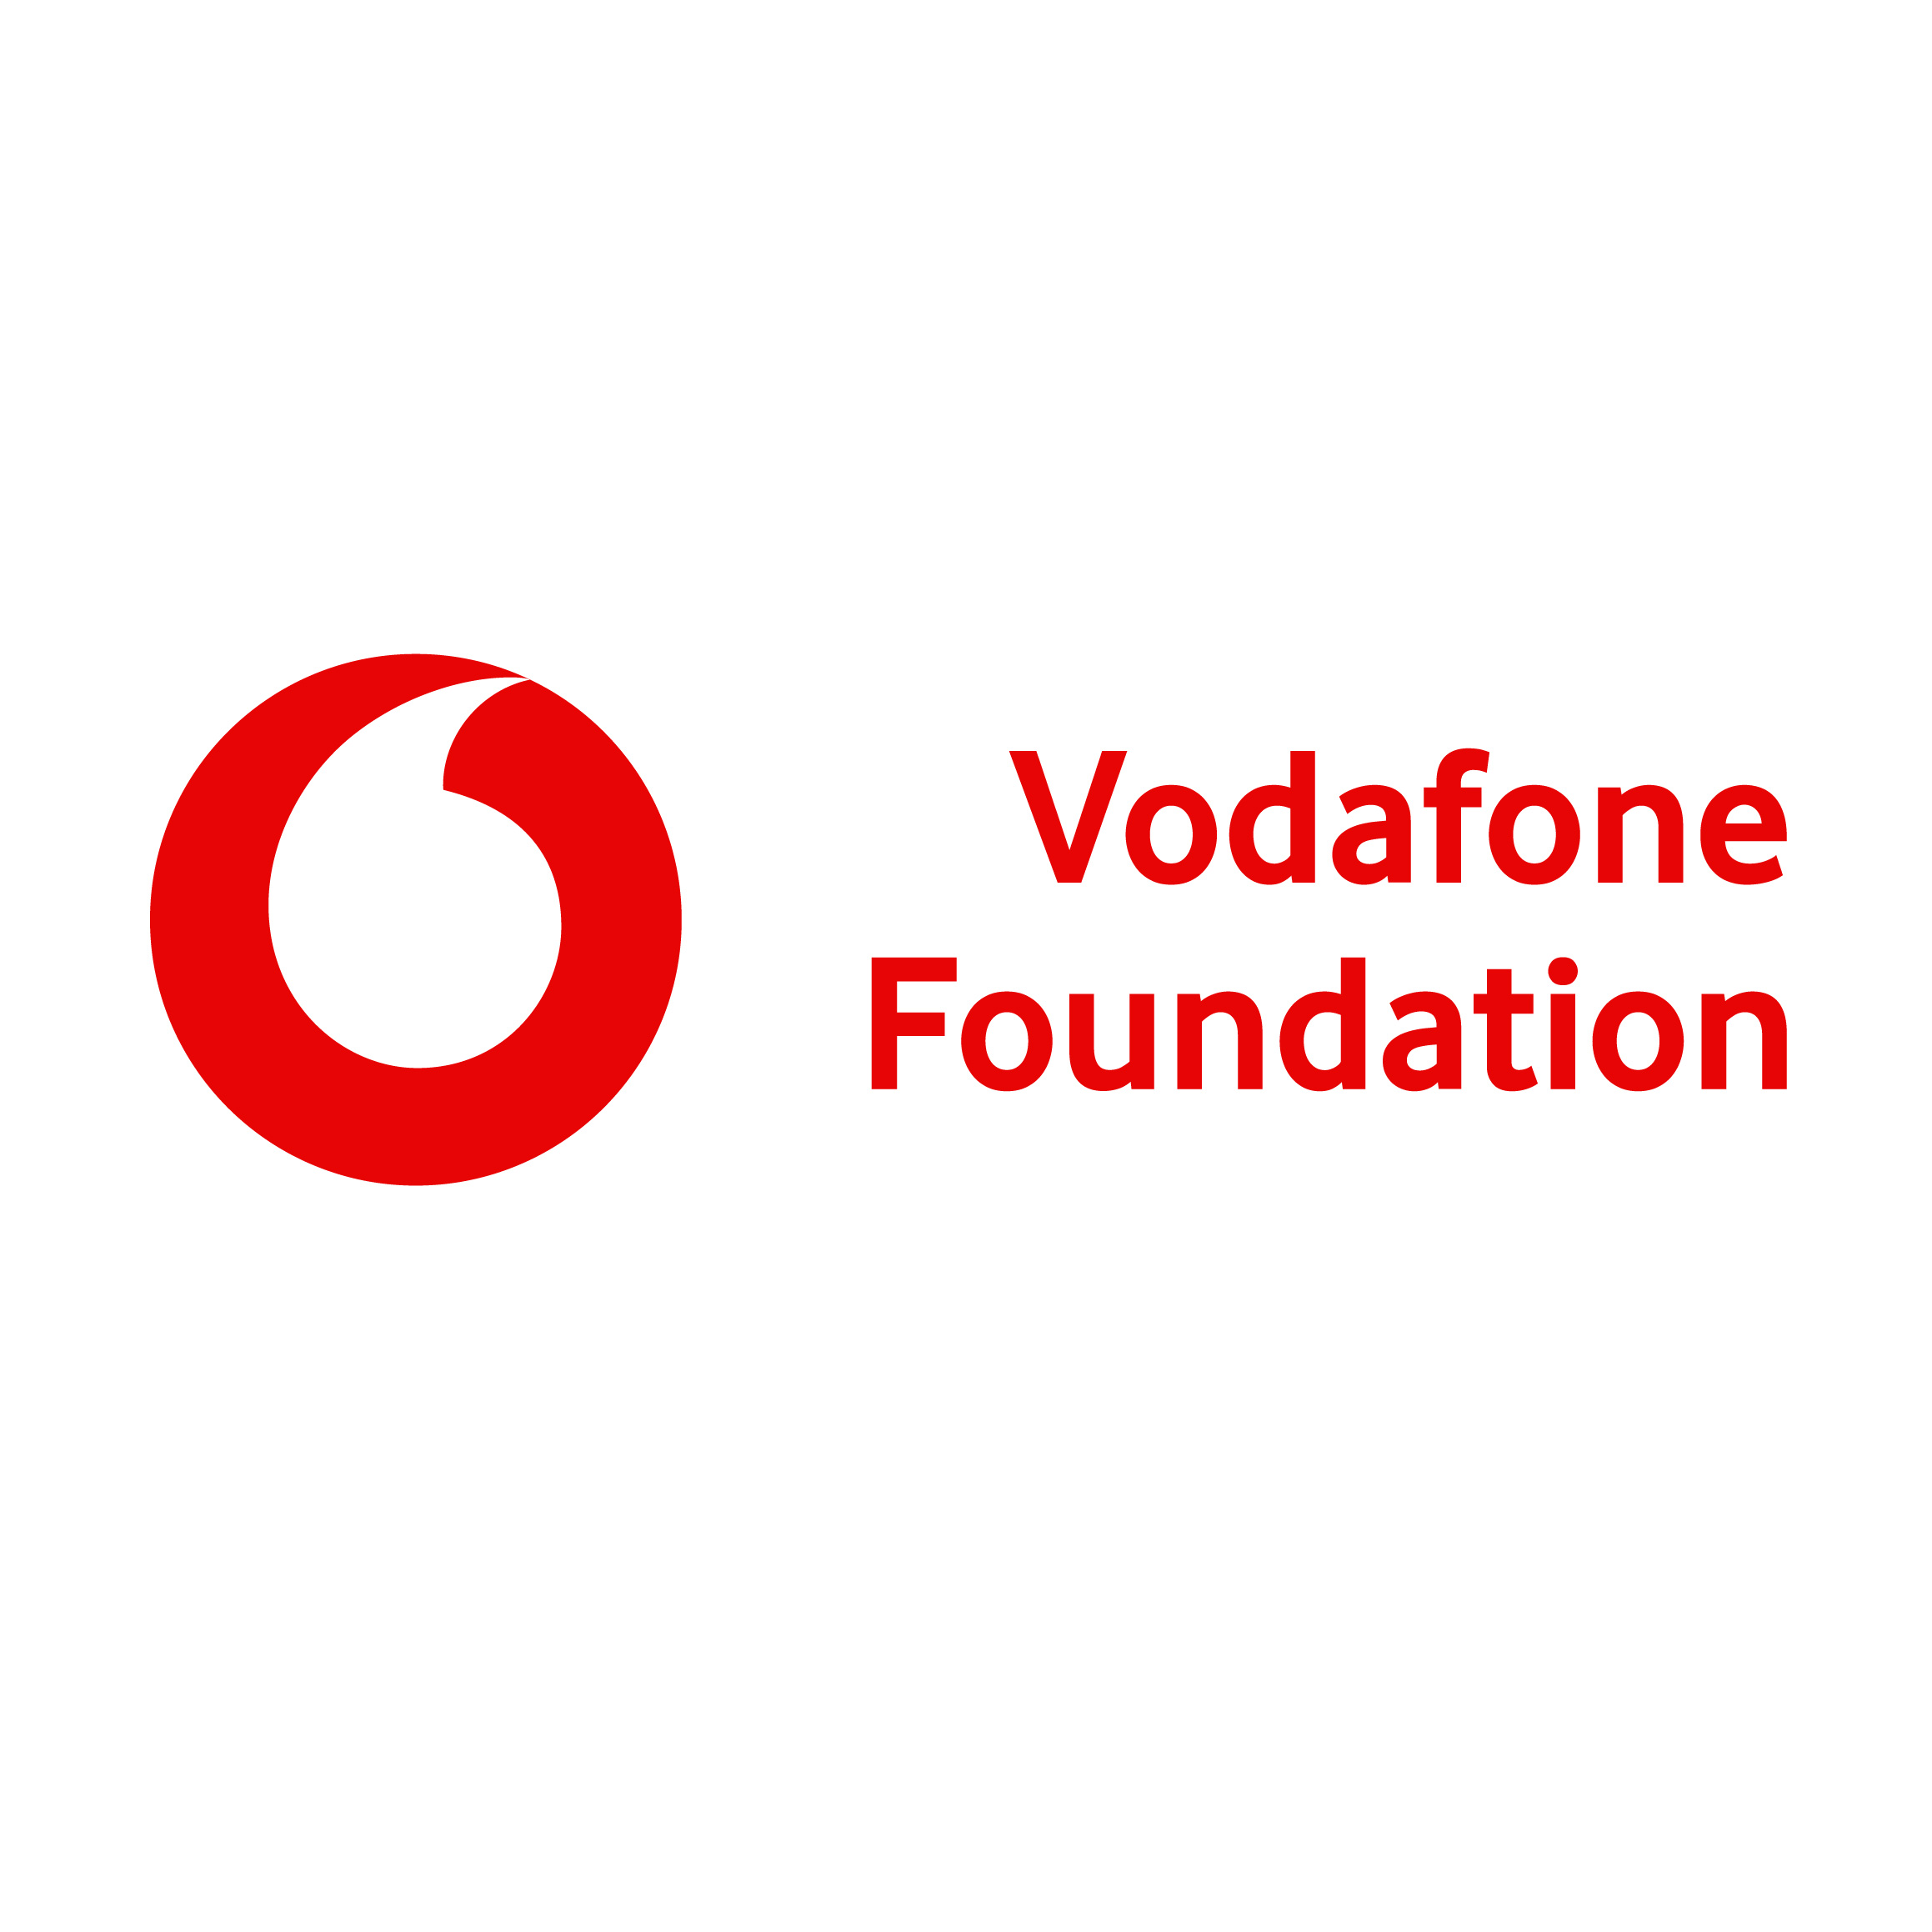 Vodafone_Foundation_Logo_Red_RGB